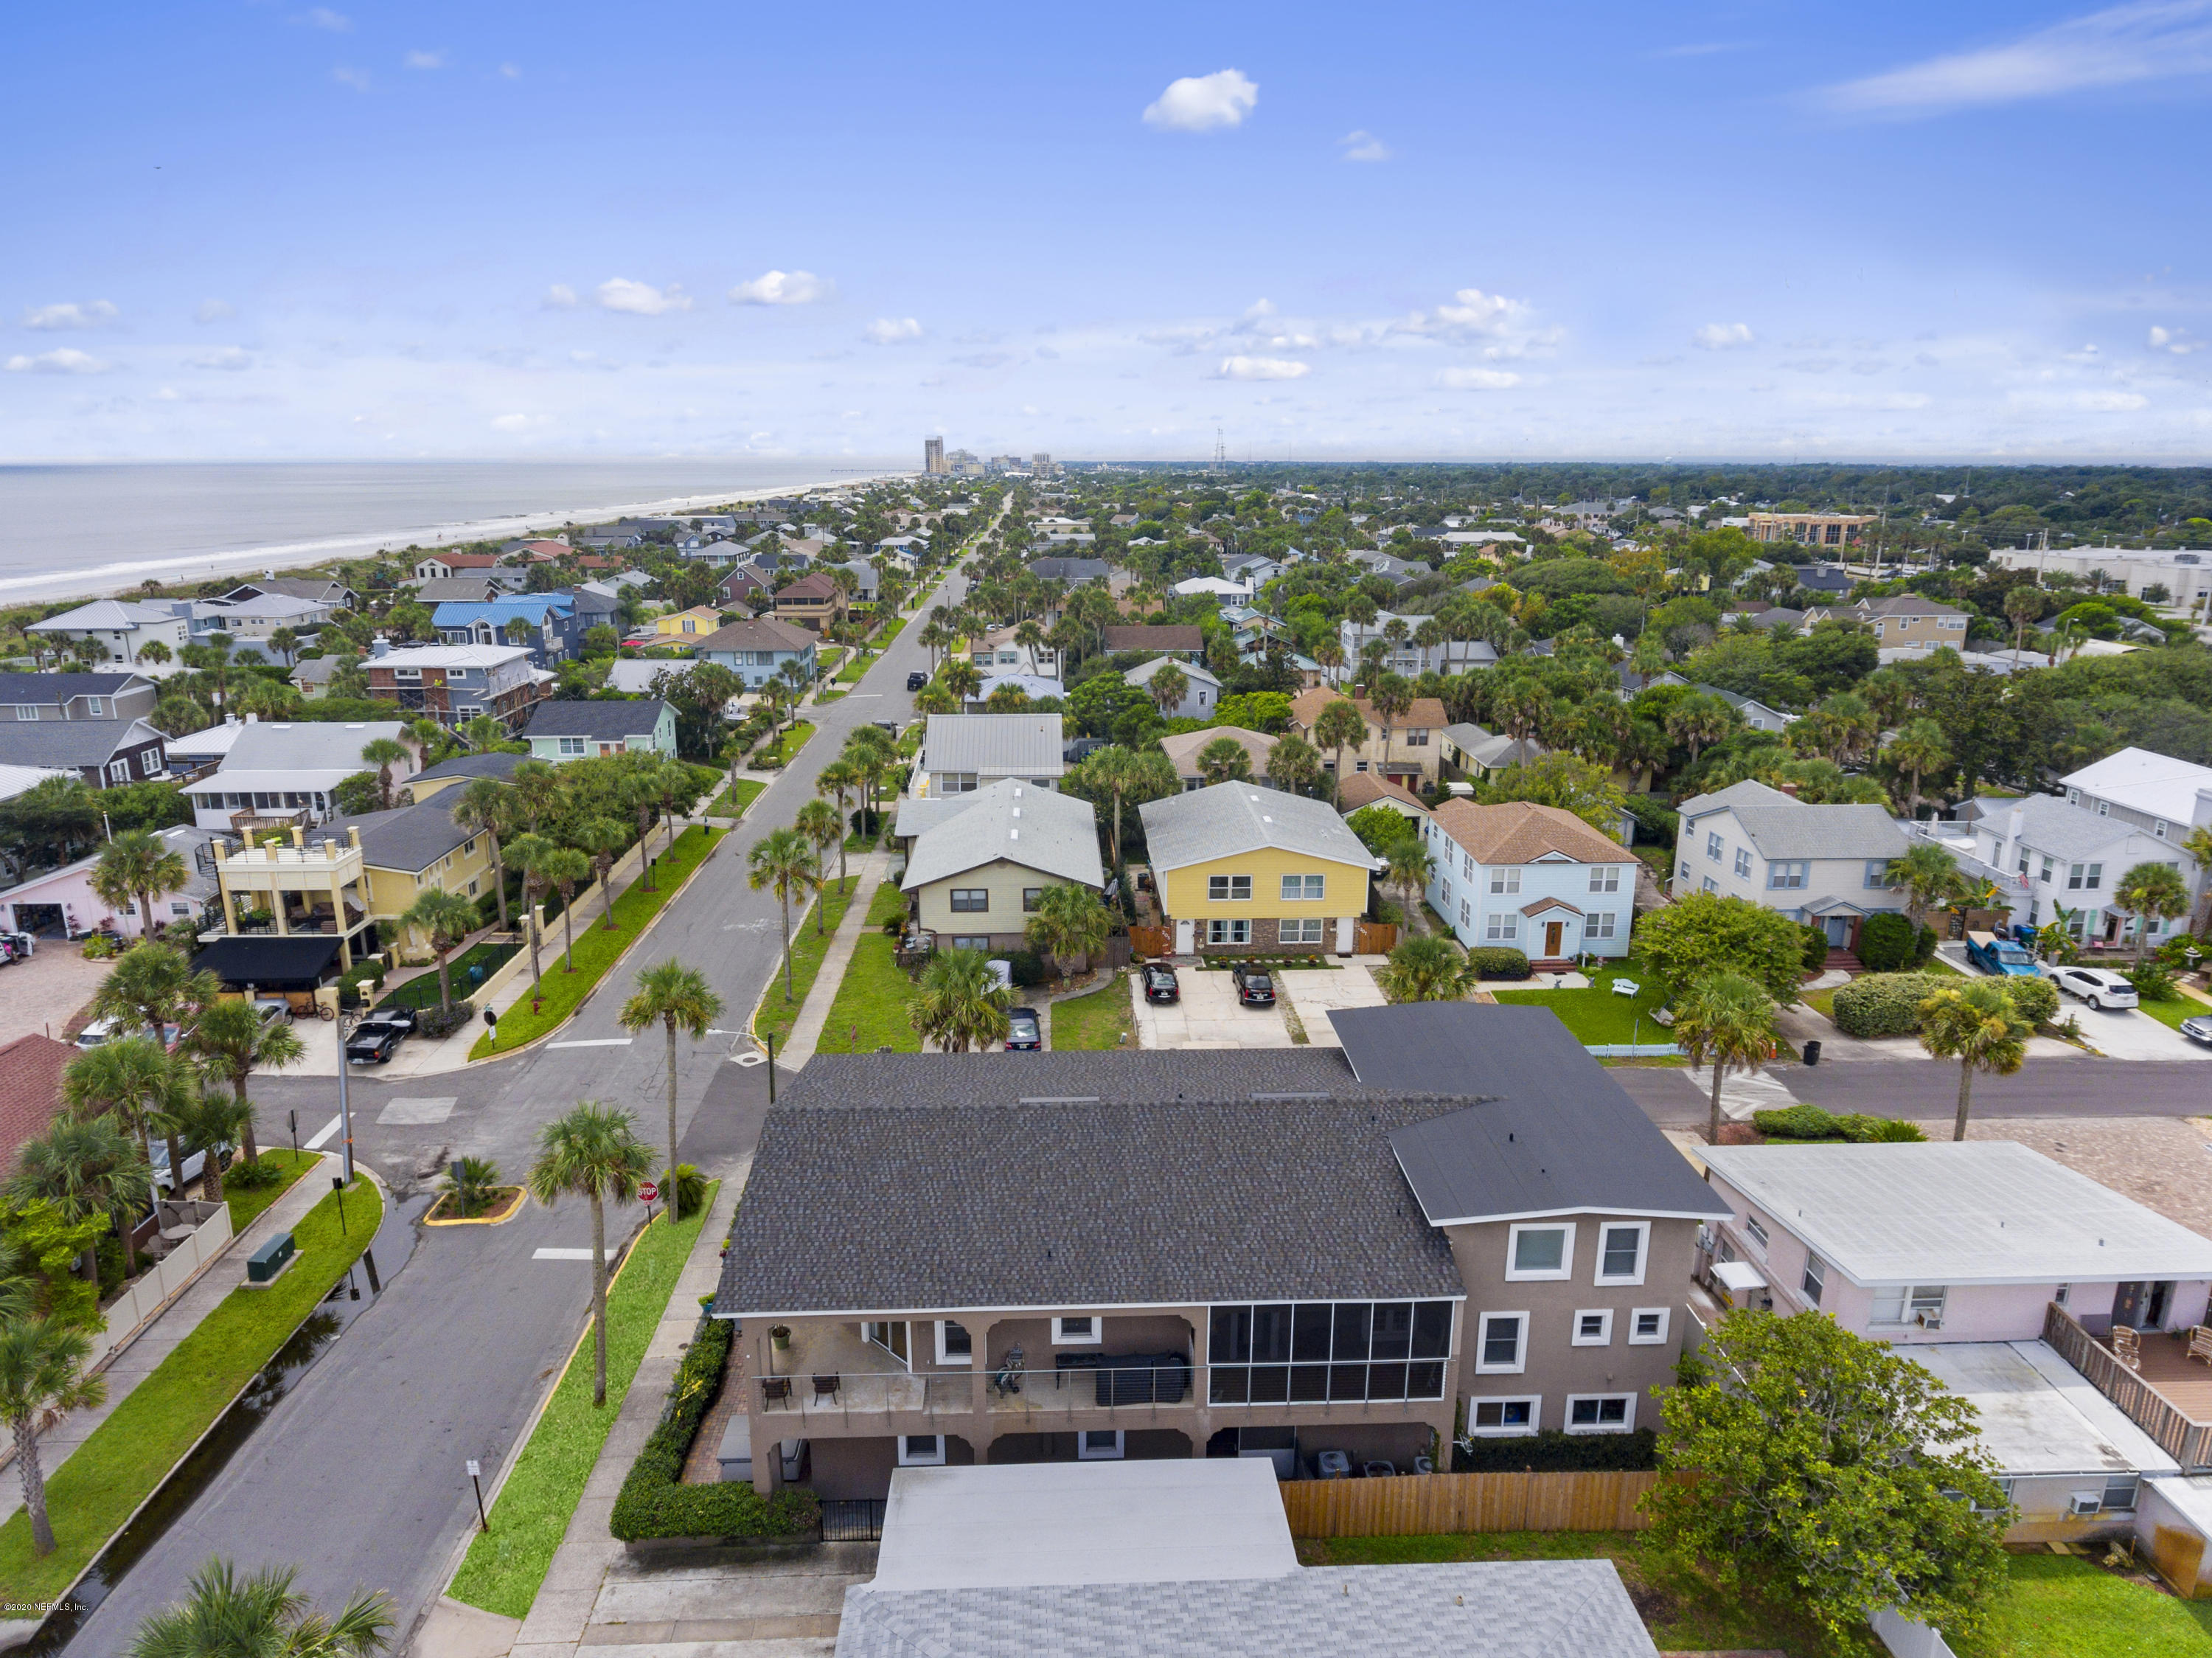 320 FIRST, NEPTUNE BEACH, FLORIDA 32266, 7 Bedrooms Bedrooms, ,6 BathroomsBathrooms,Investment / MultiFamily,For sale,FIRST,1054763